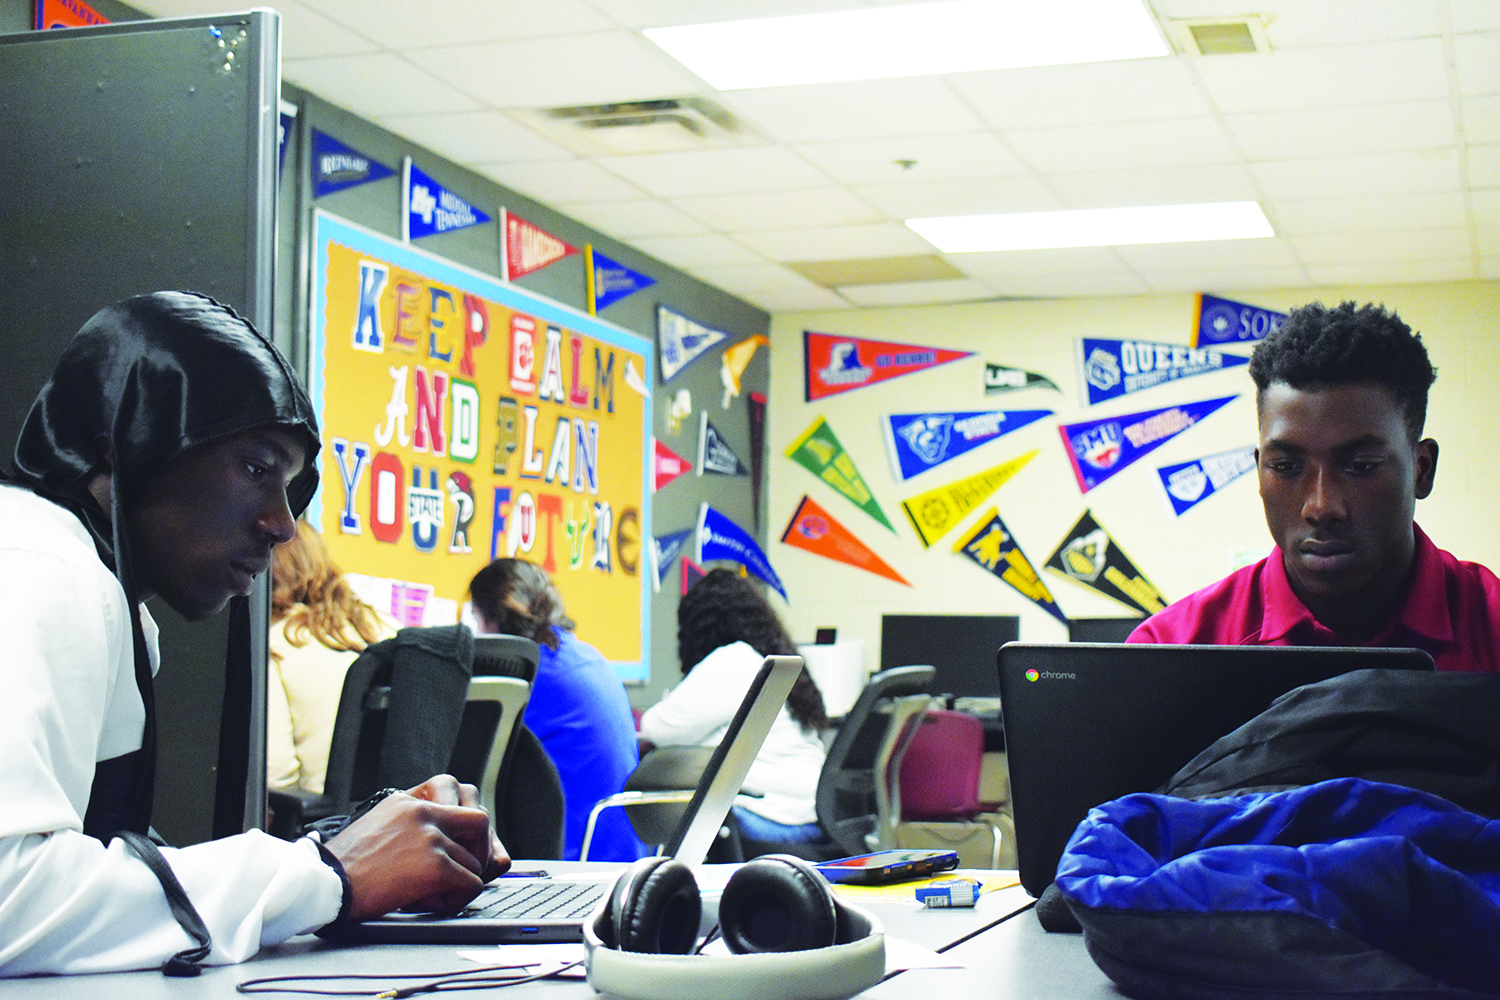 Seniors Melik Etienne (left) and Jason Nolton (right) spend third period working with college advisors Amber Jones and Abby Poirier in the college advisors' office. On the wall is a a message reading